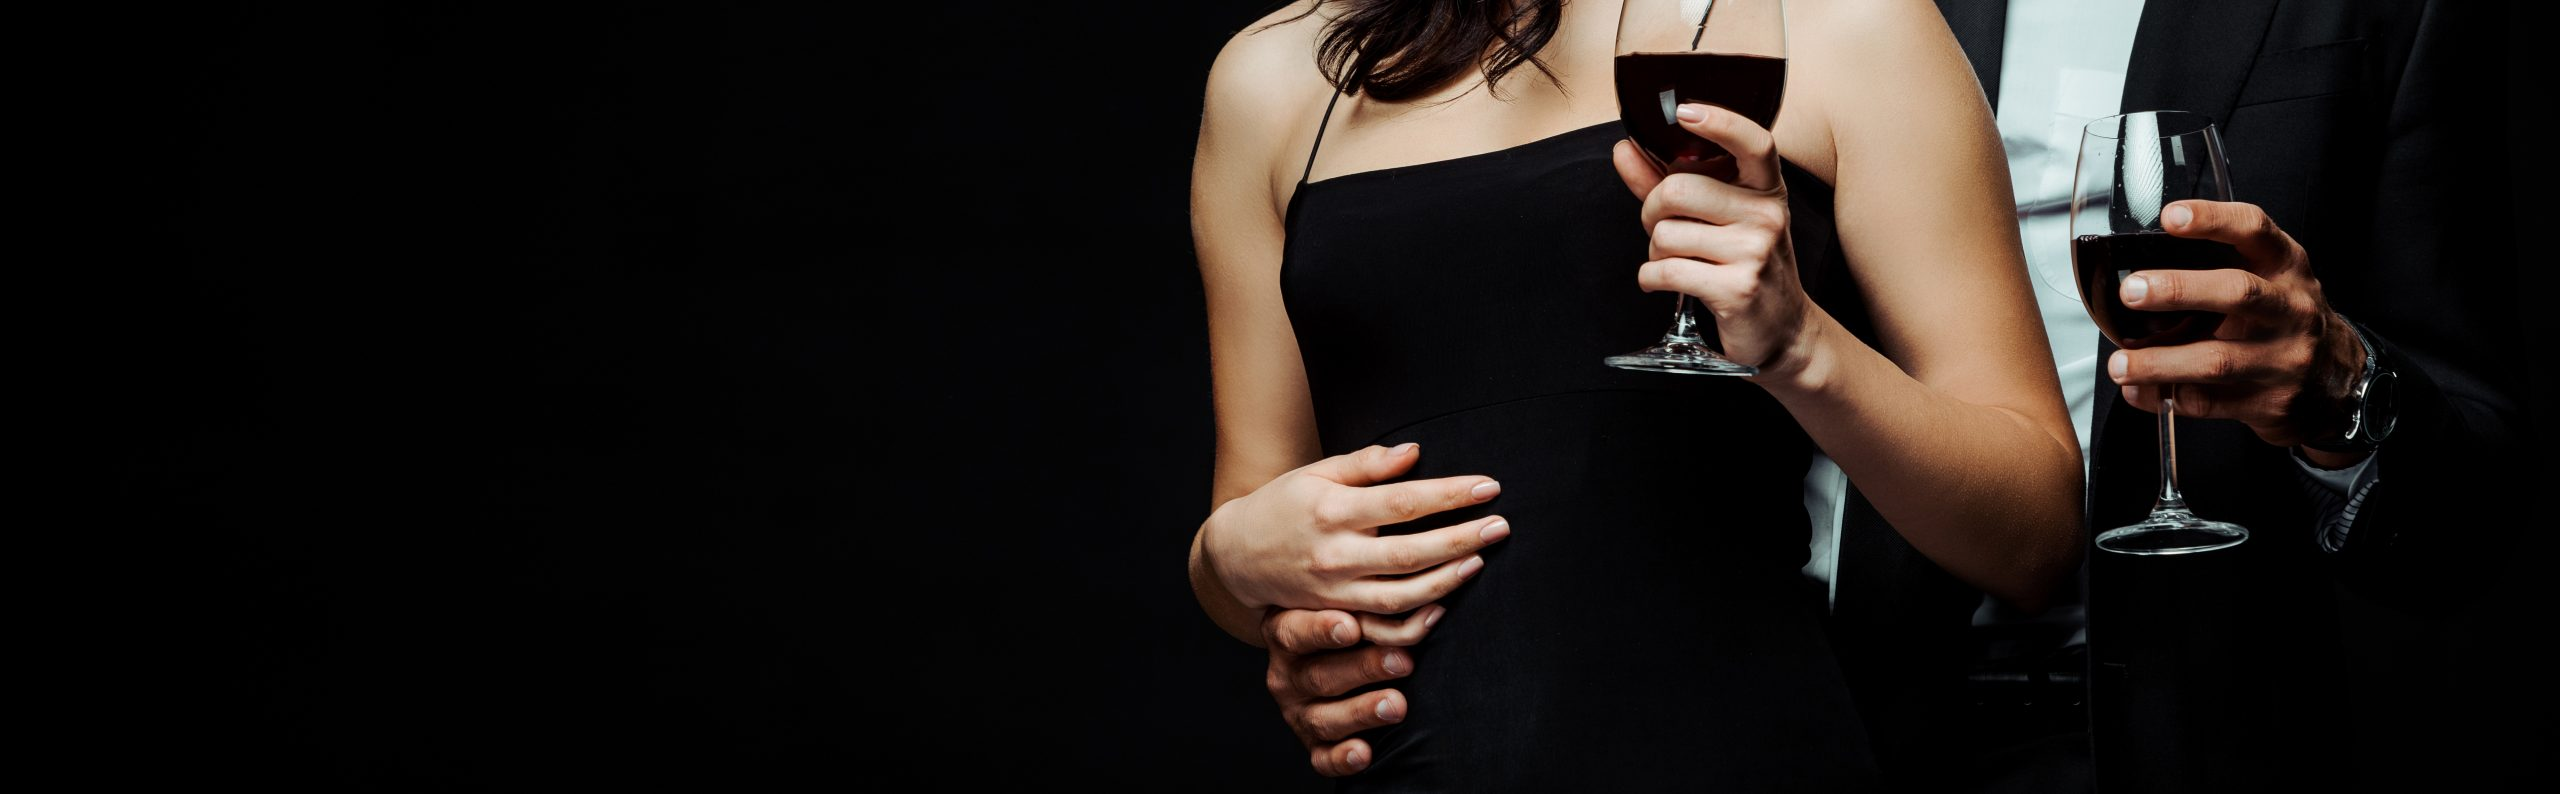 panoramic shot of couple holding glasses with red wine isolated on black